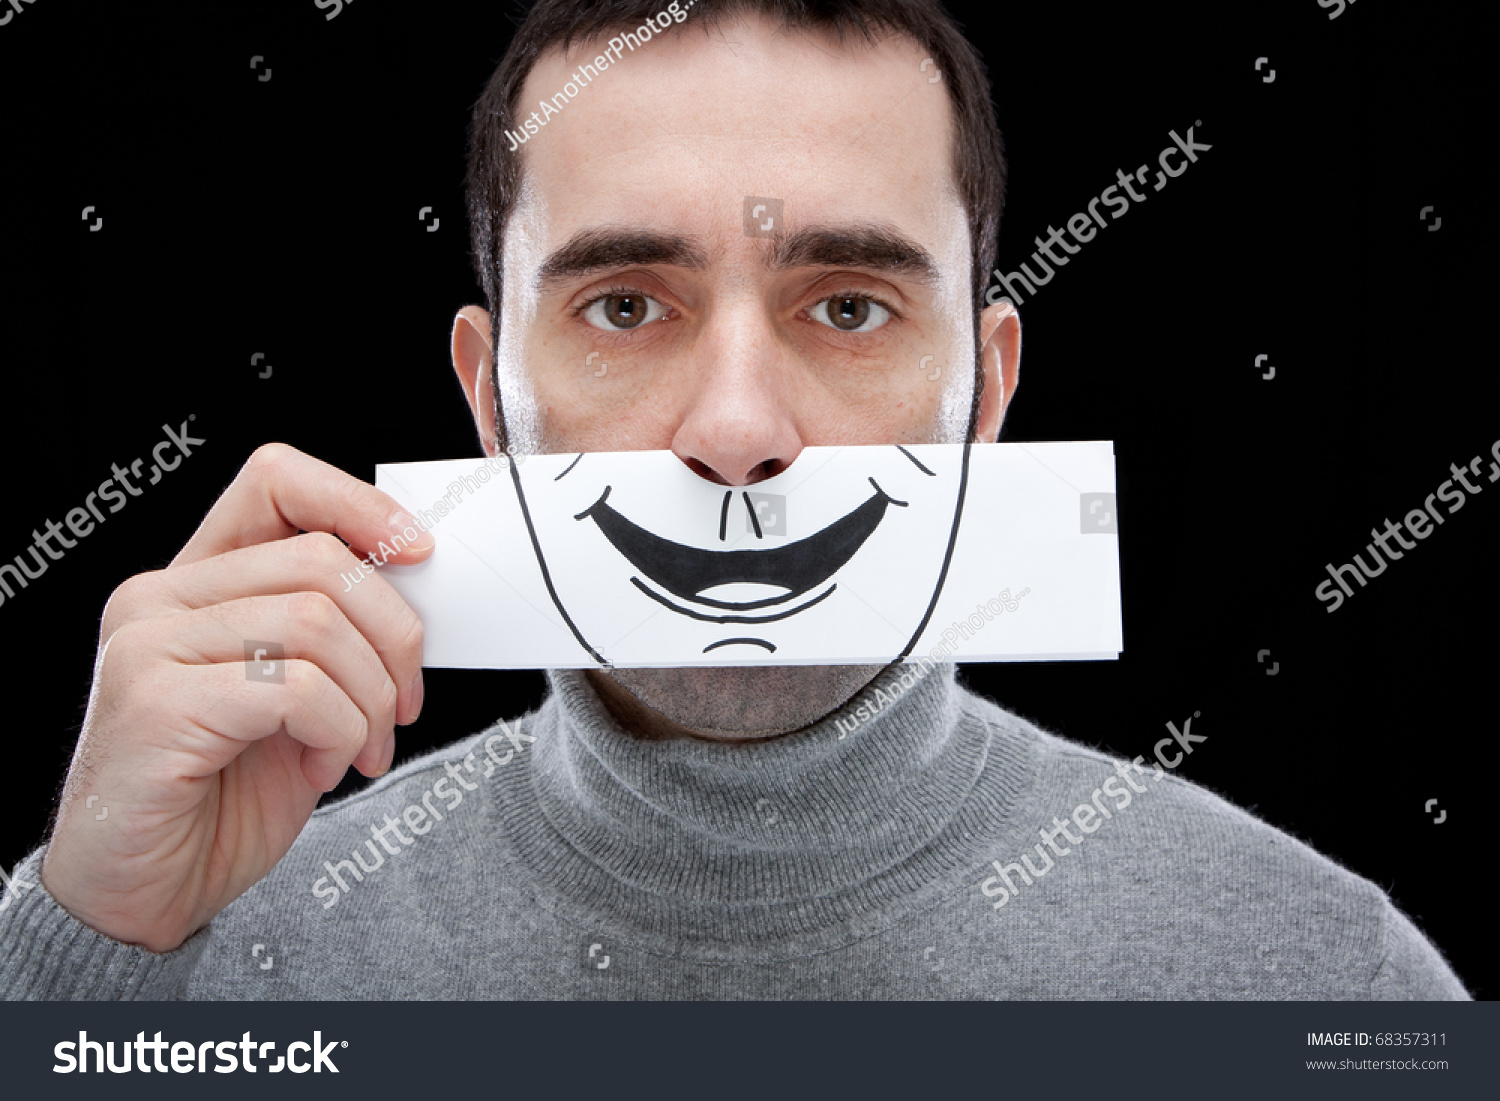 Seizure term facial express blank asking they